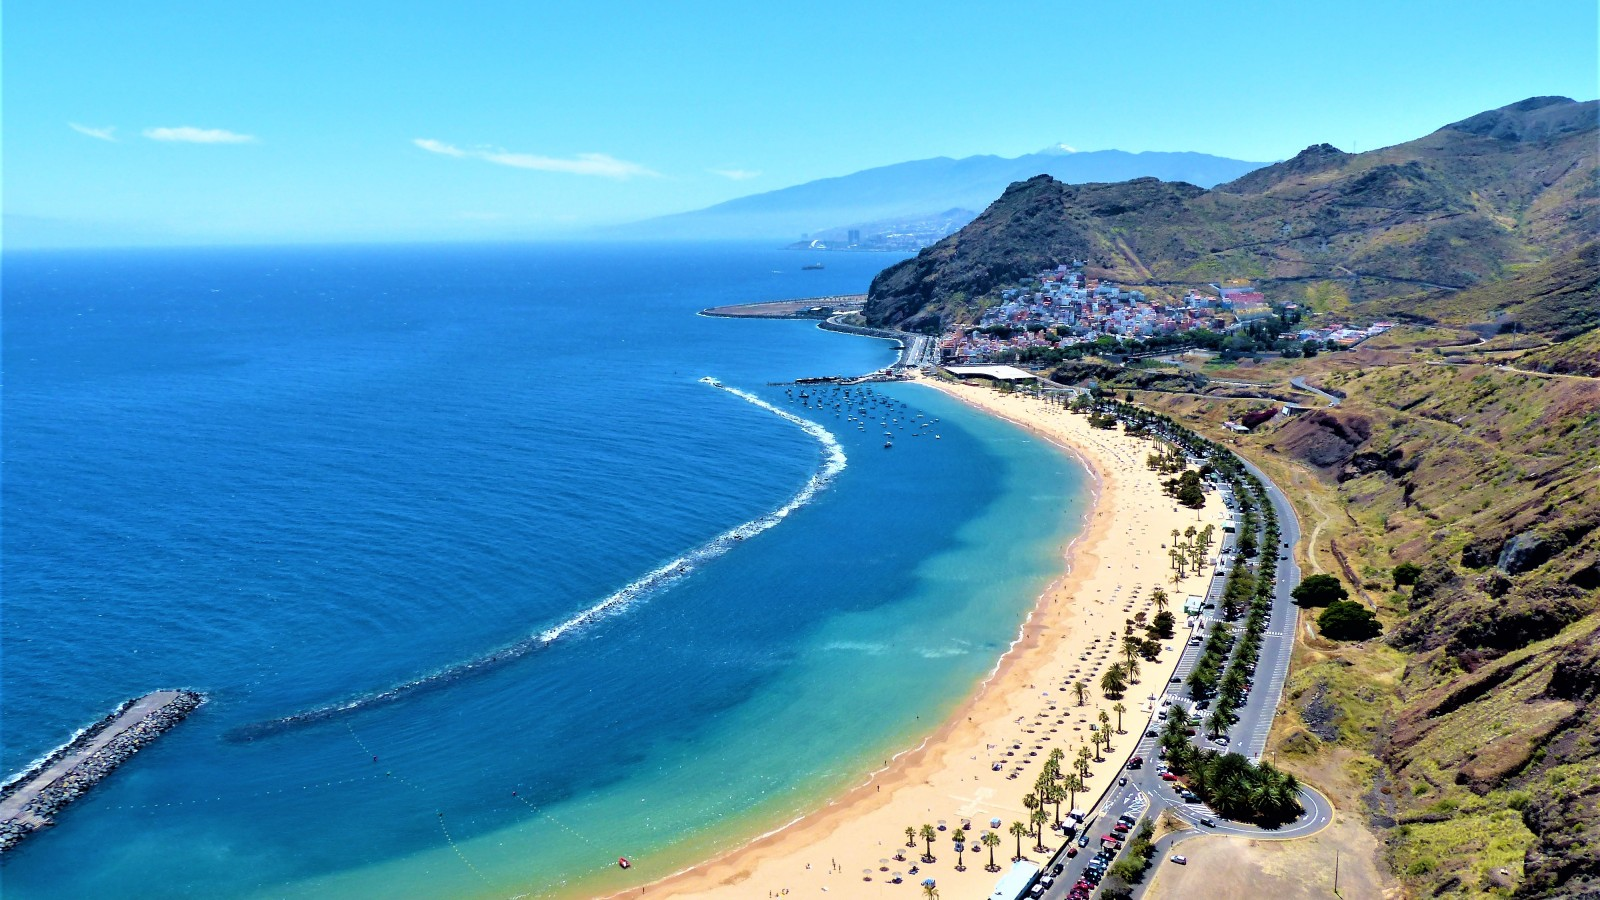 The sun-soaked coastline of Tenerife, the largest of the Canary Islands